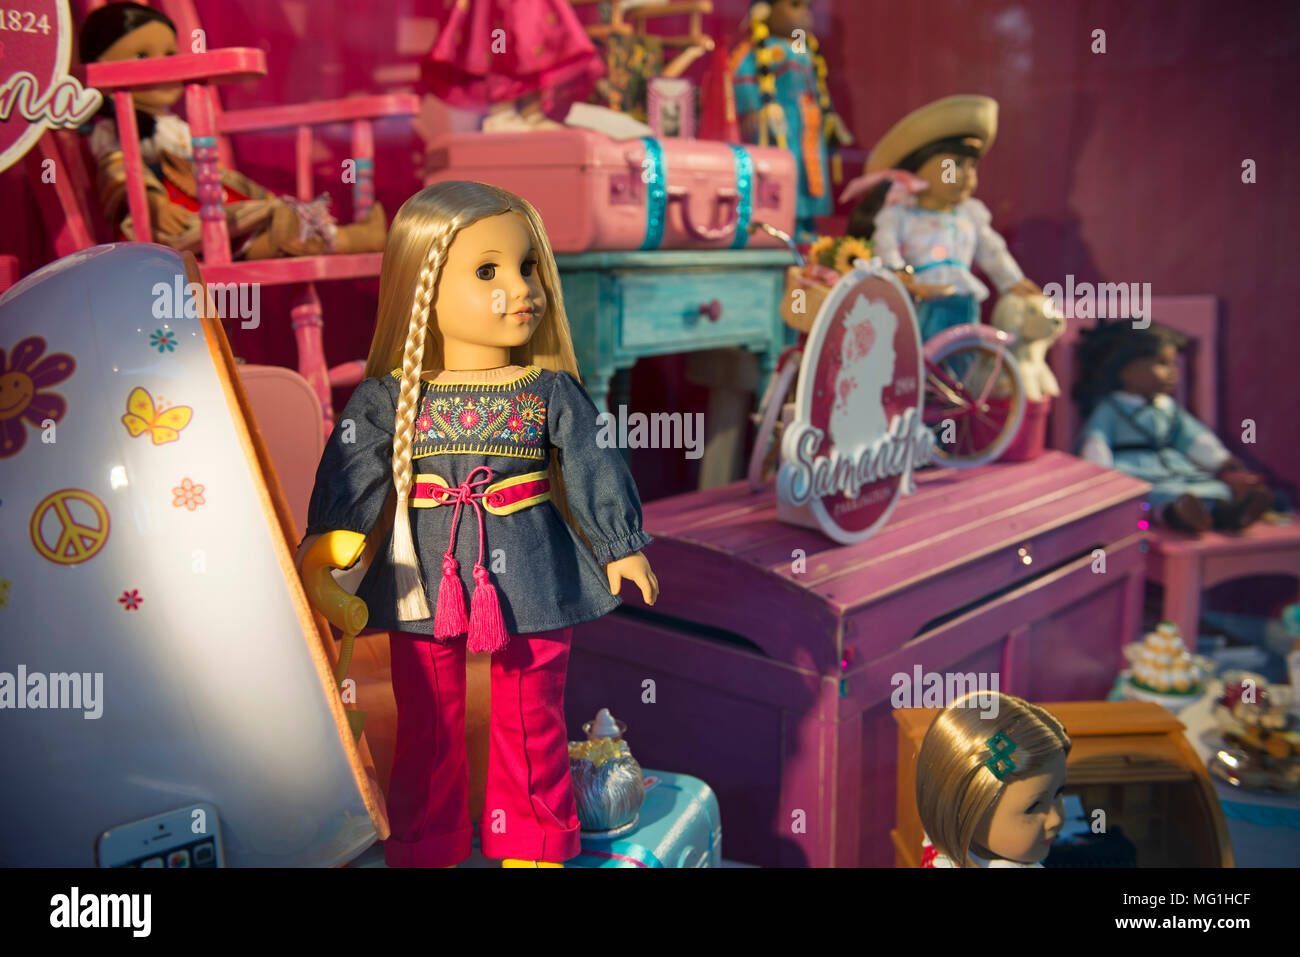 American Girl Doll, Isabelle, Display Shop Window, Store Chicago - Stock Image